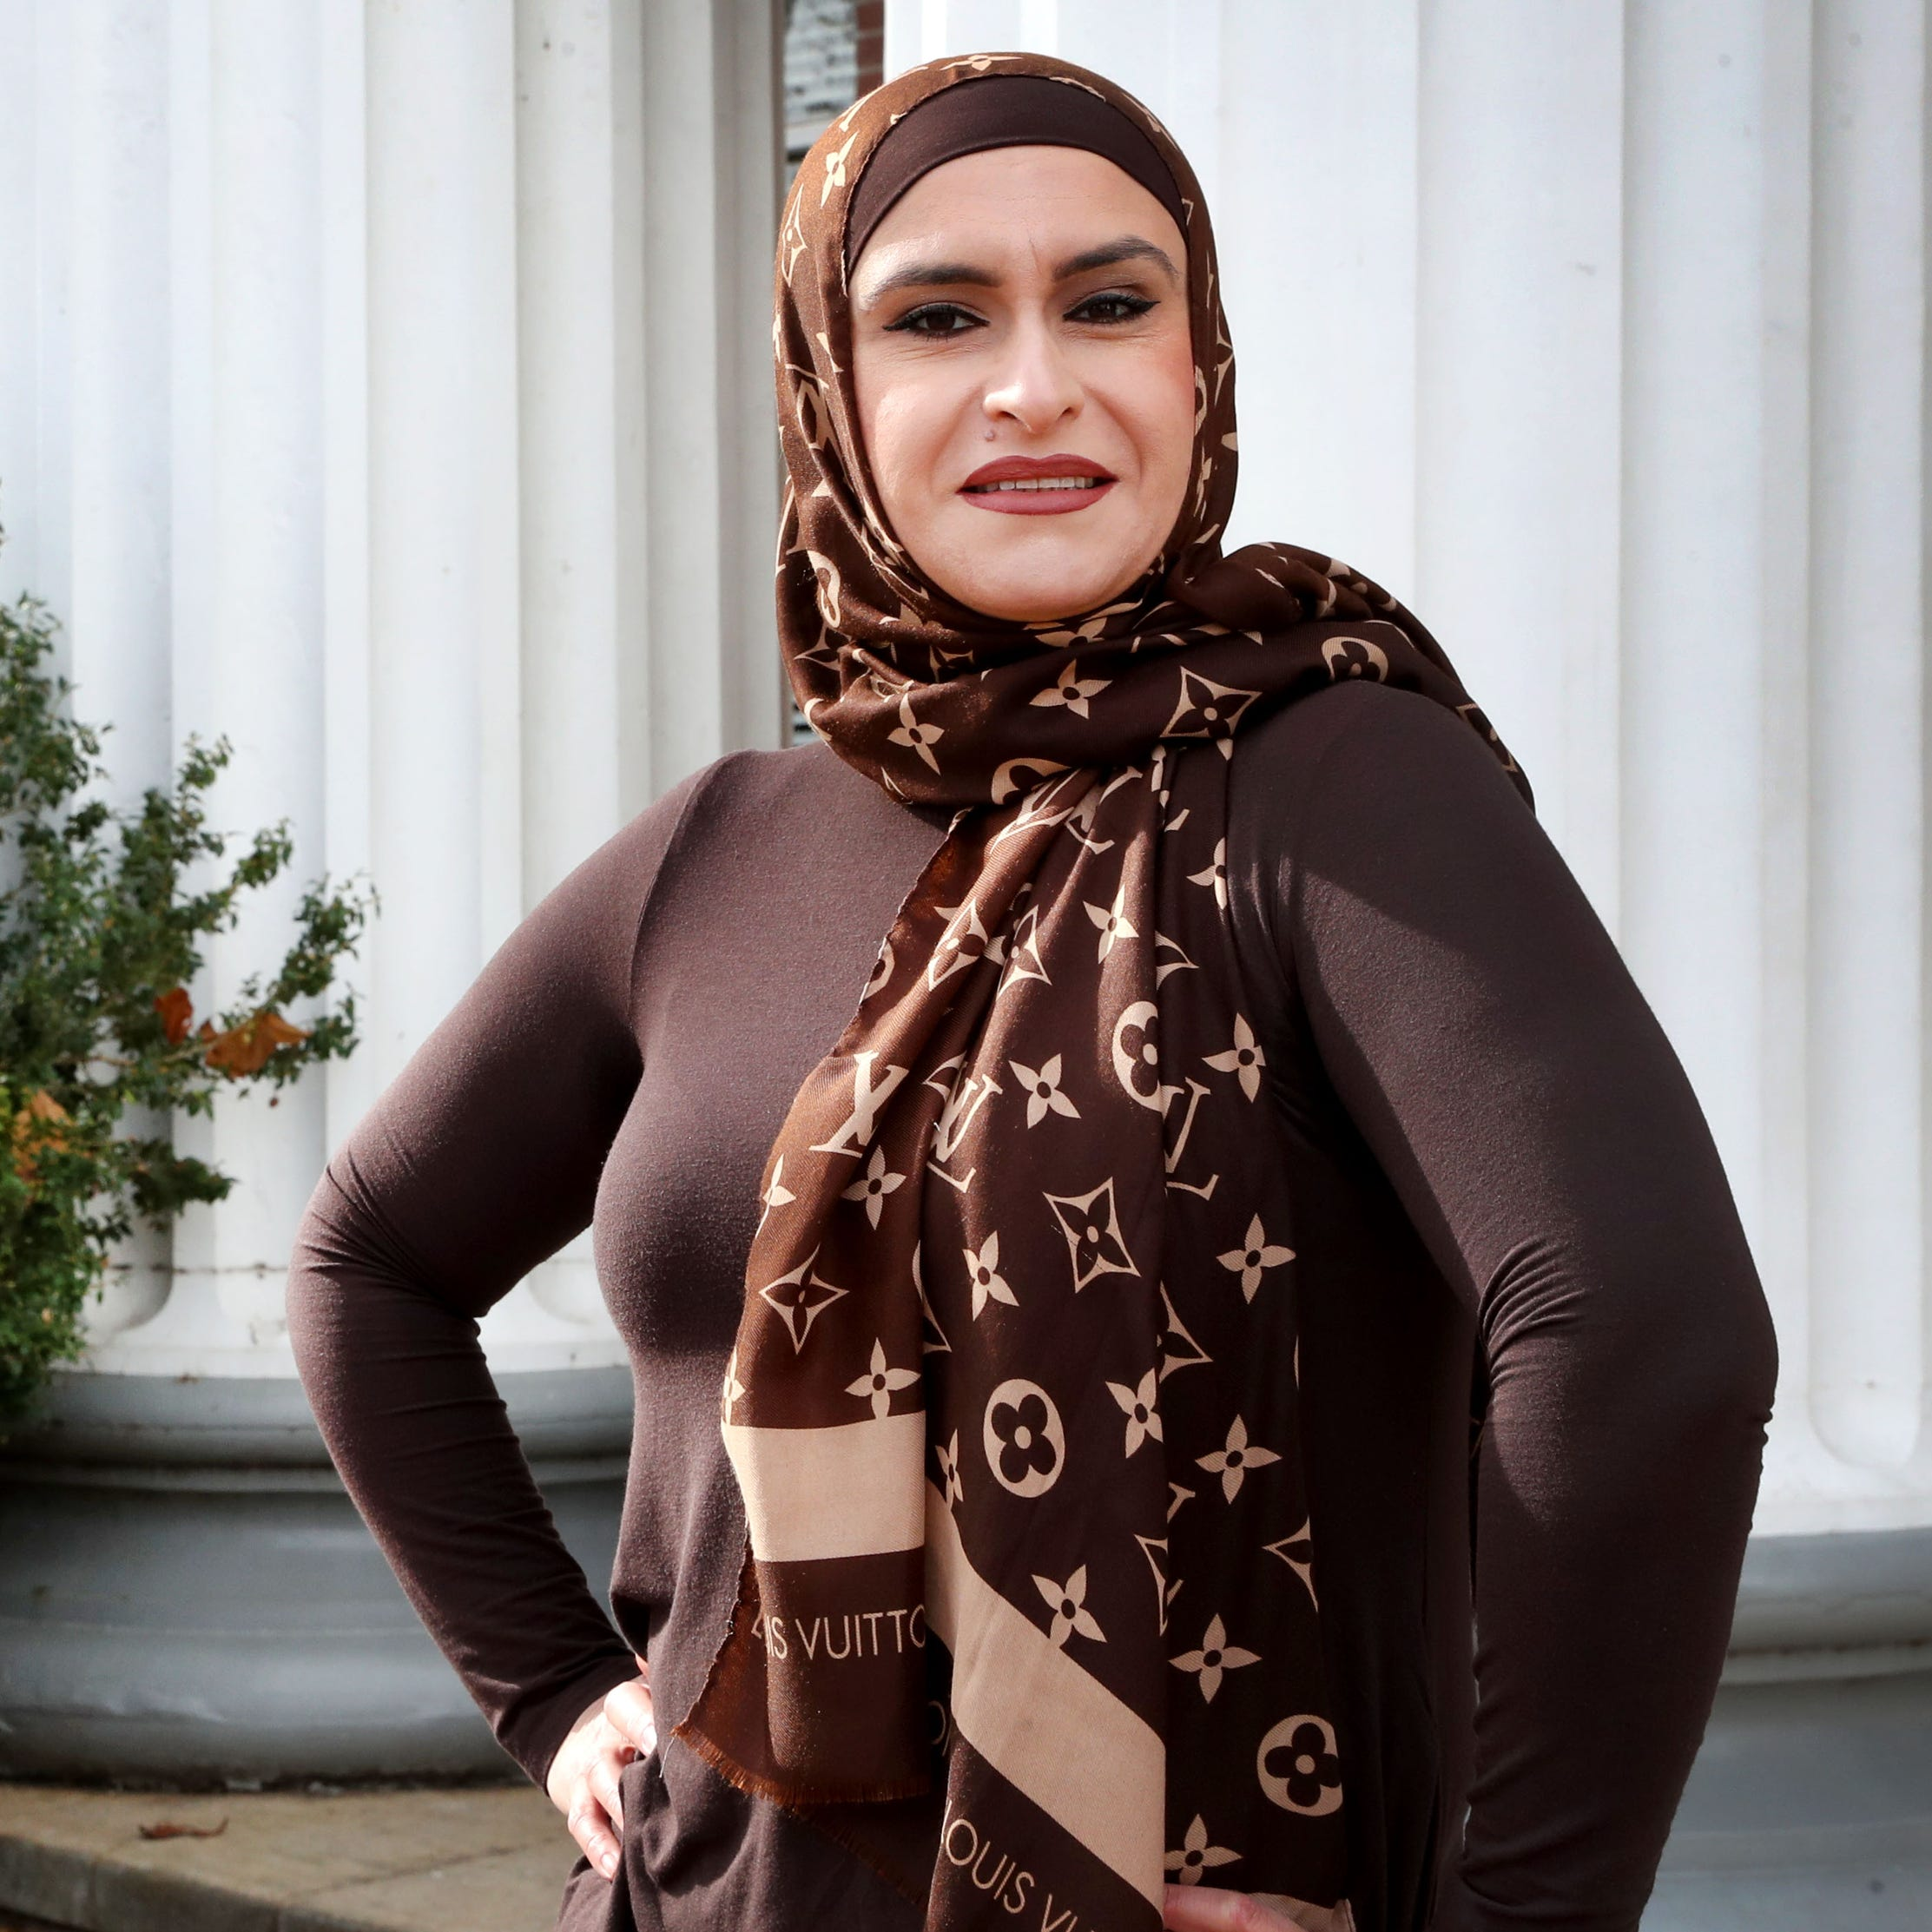 The Dose of news you can use. This week: Autism, Oprah's airport and acceptance for Muslim women